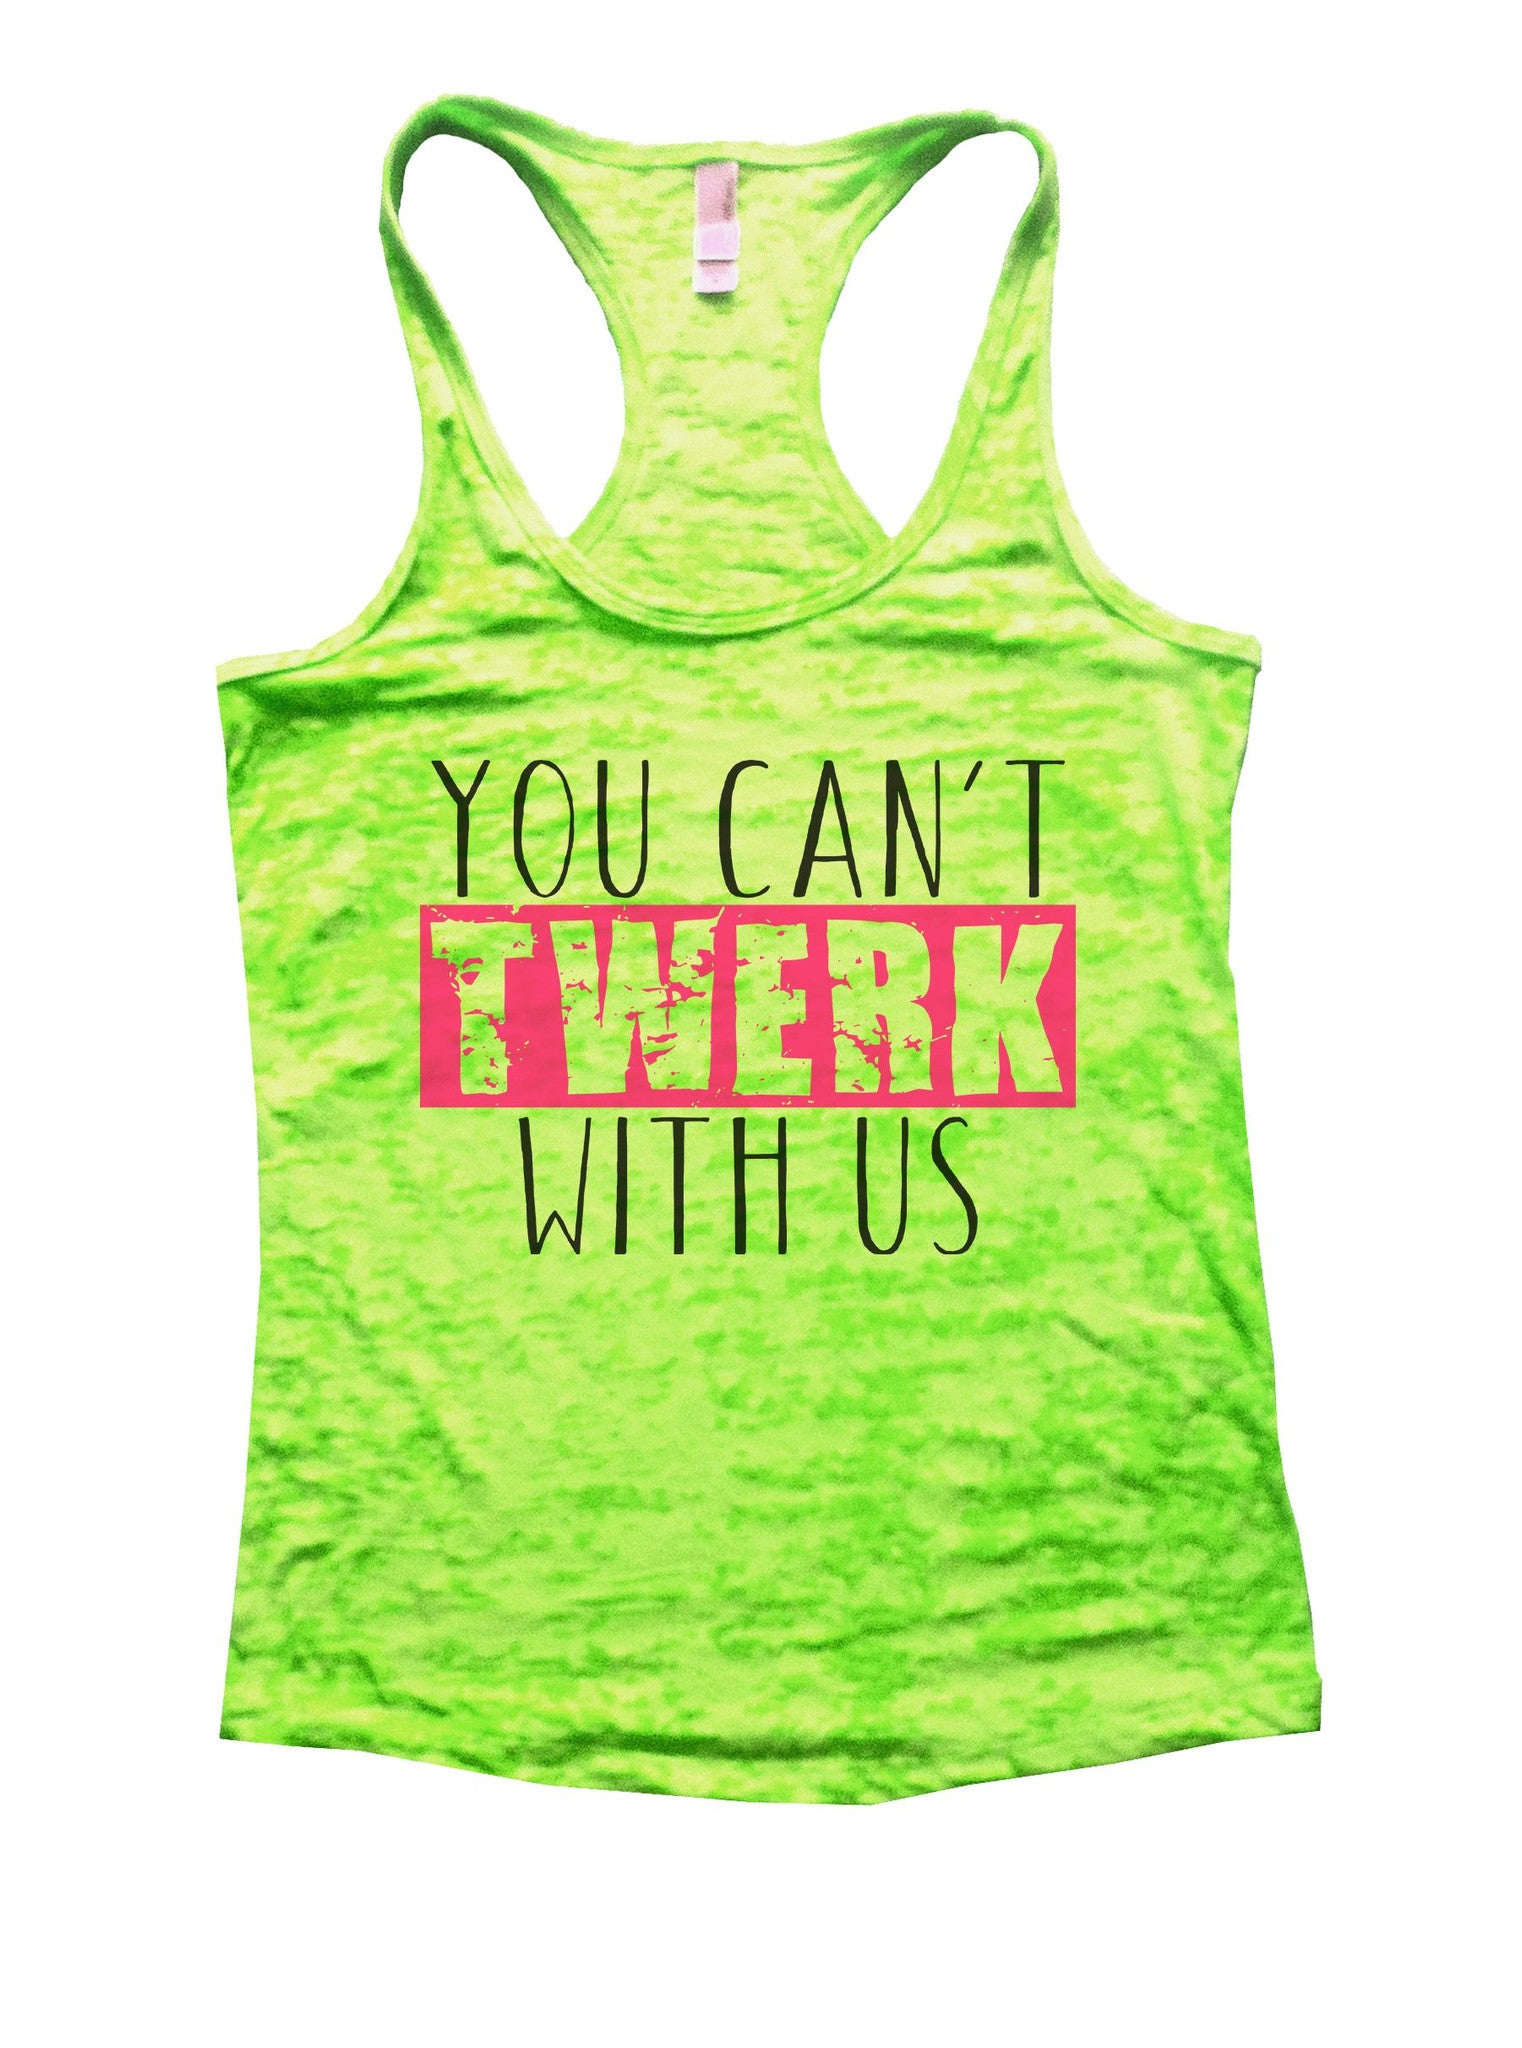 You Can't Twerk With Us Burnout Tank Top By BurnoutTankTops.com - 960 - Funny Shirts Tank Tops Burnouts and Triblends  - 1